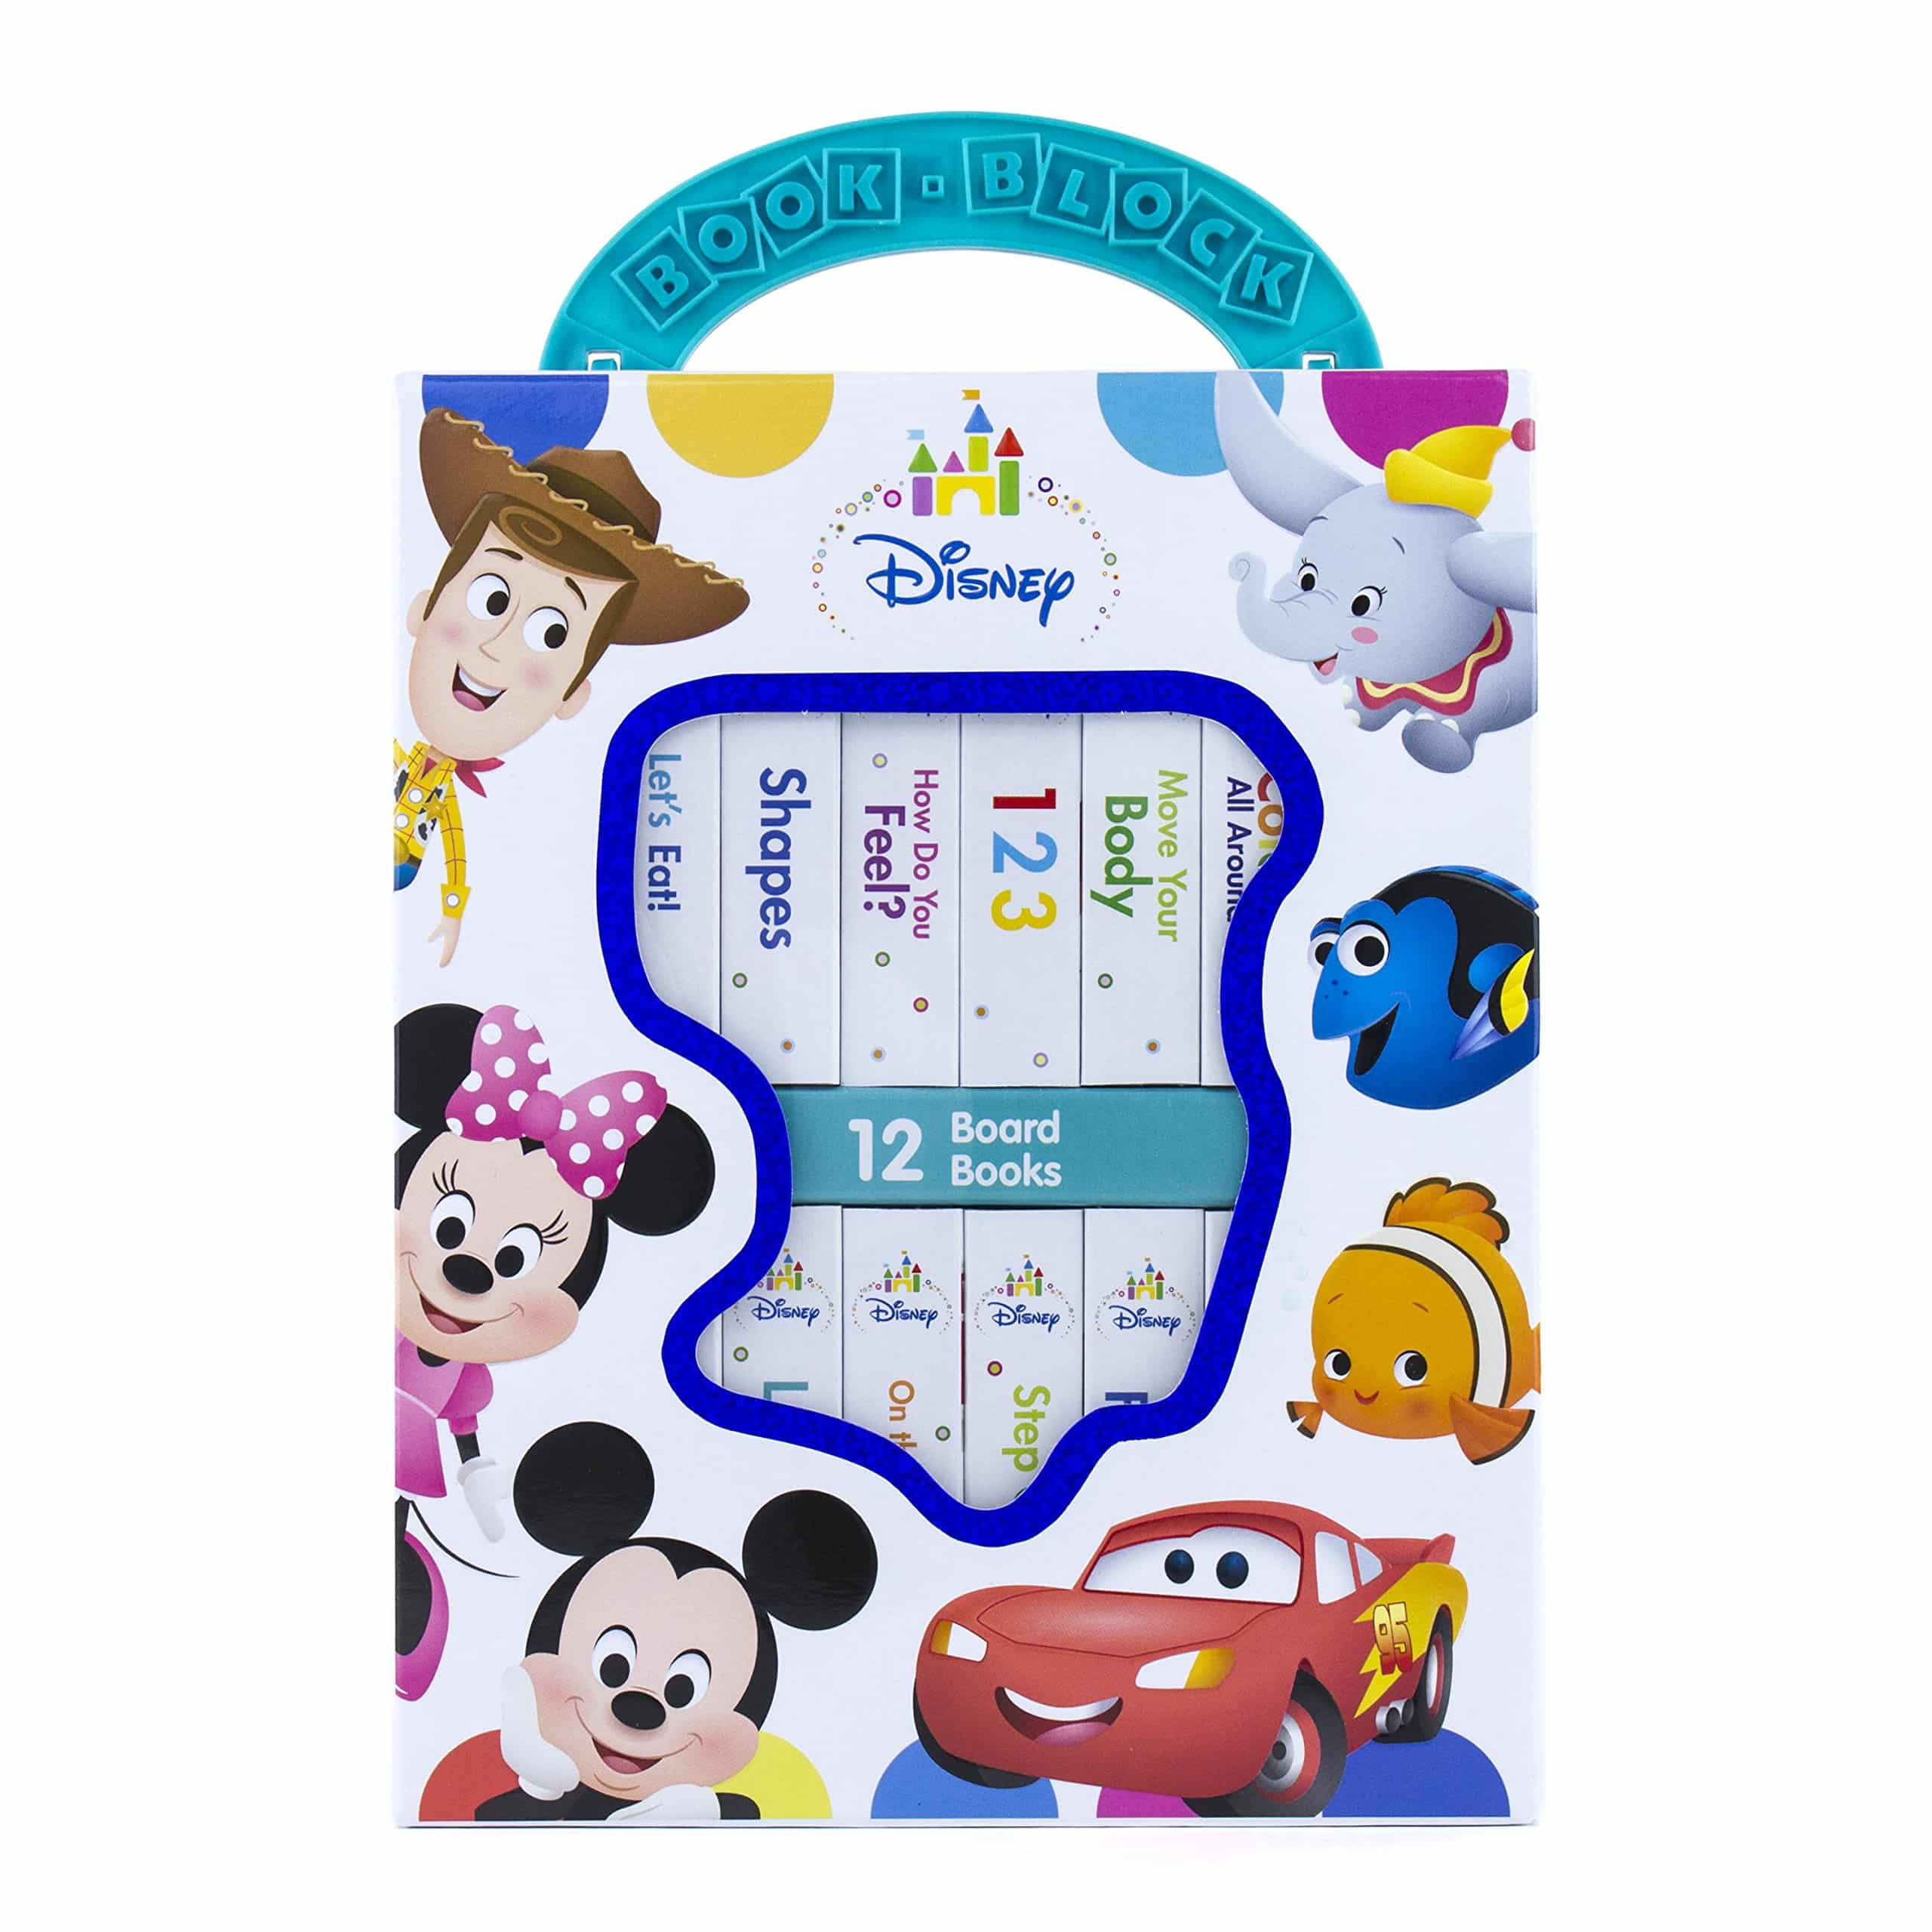 Disney Baby Mickey Mouse, Minnie, Toy Story and More! – My First Library Board Book Block 12-Book Set for $9.72 (Reg $15.99)